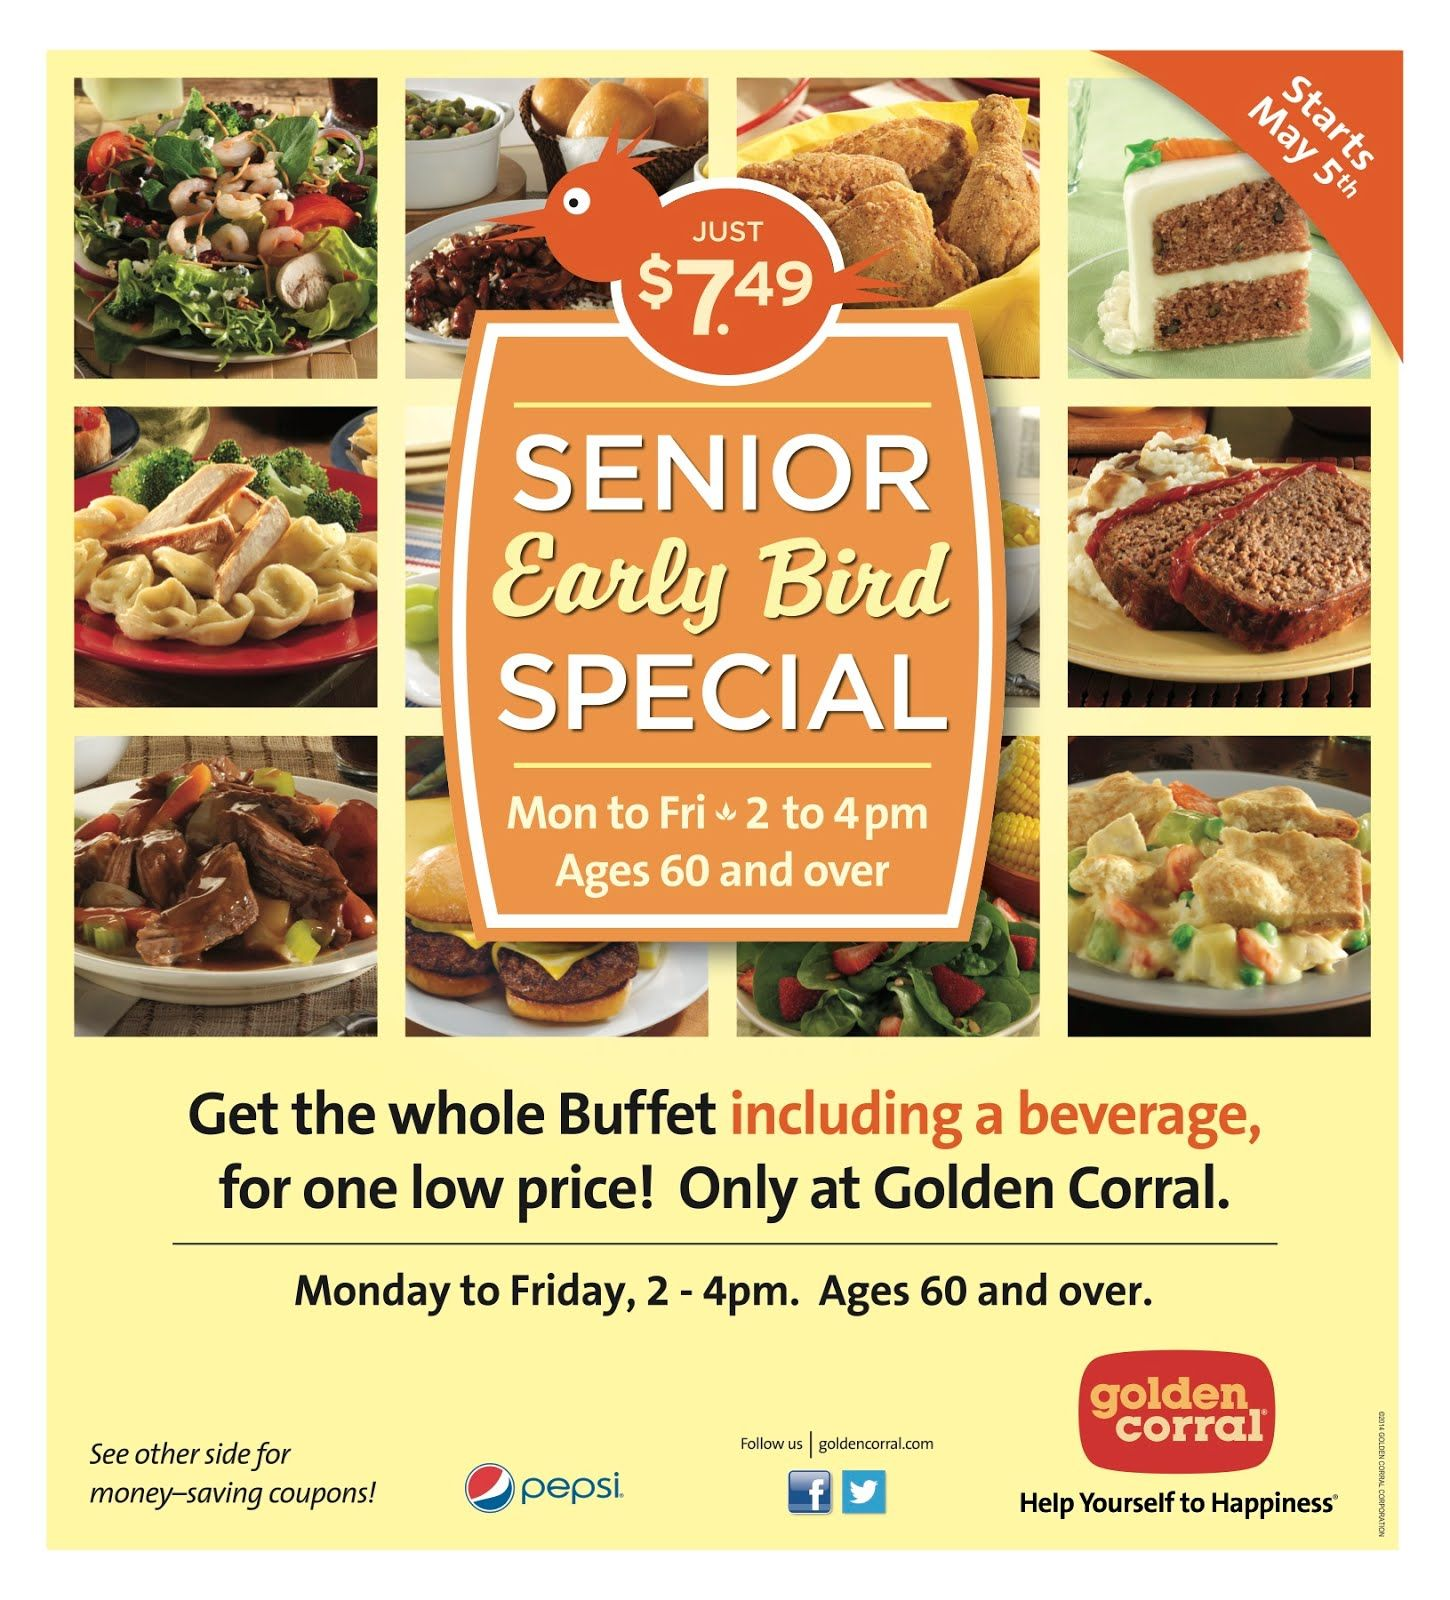 GOLDEN CORRAL KISSIMMEE FLORIDA PRICES